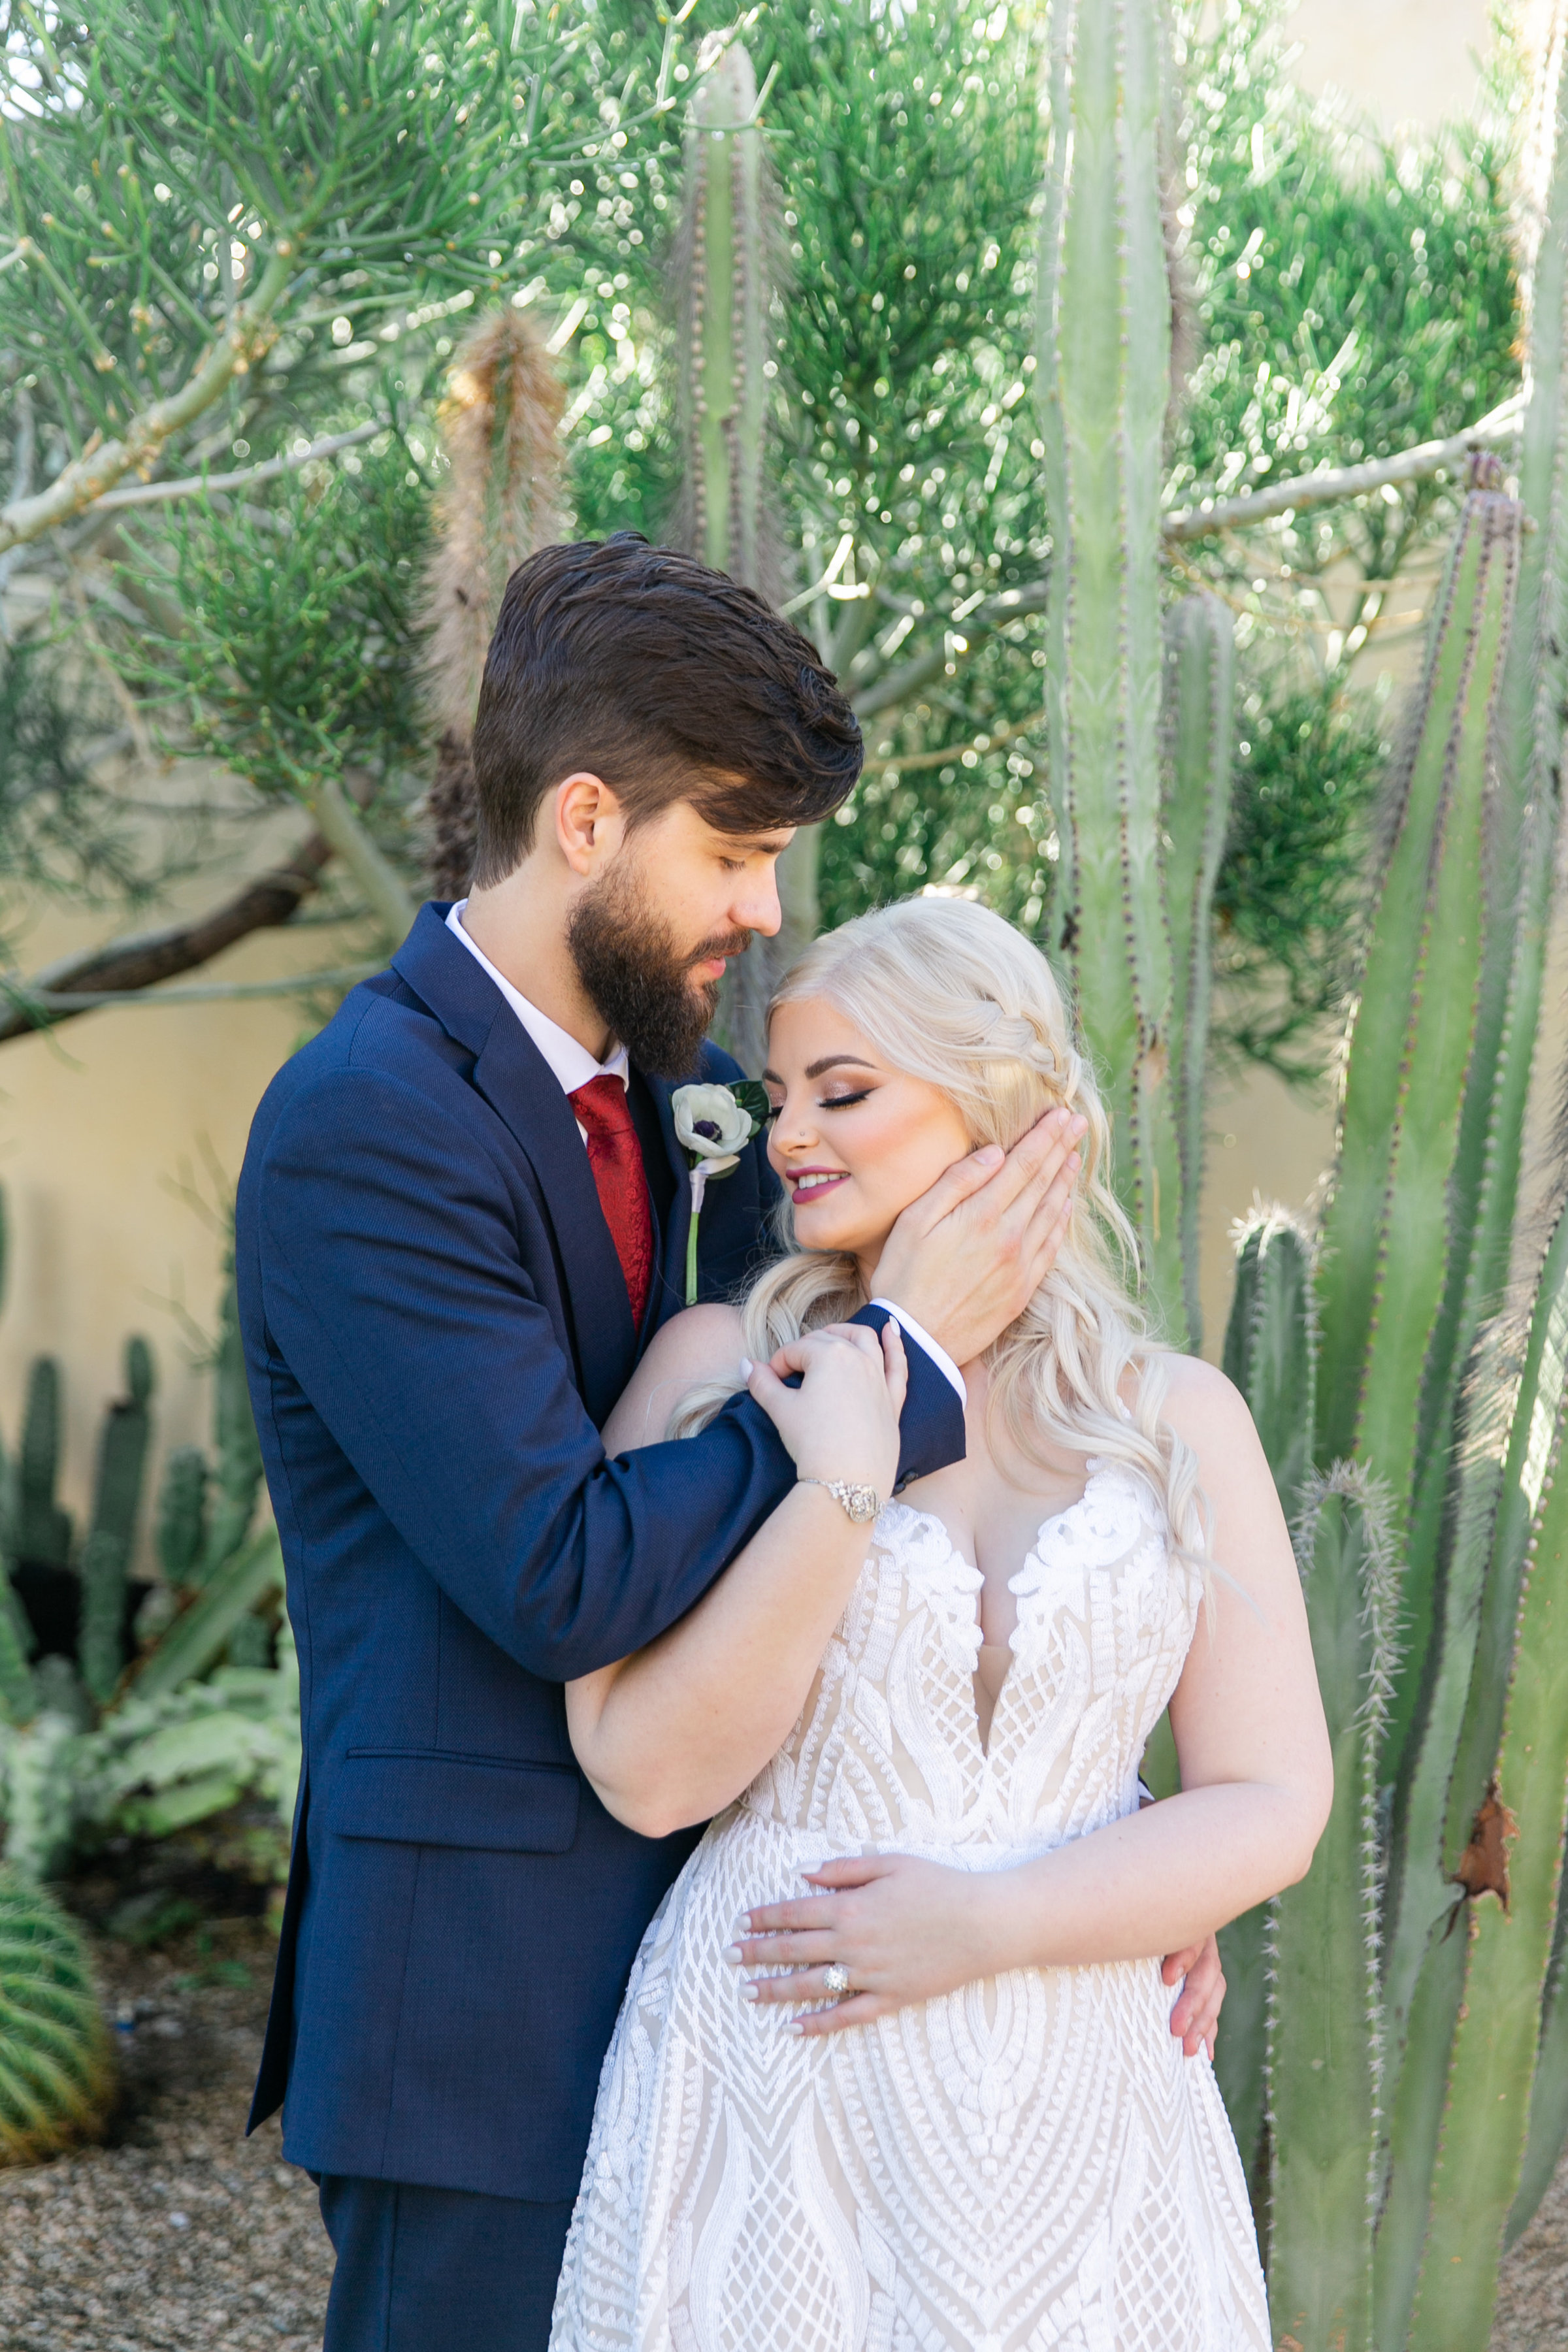 Karlie Colleen Photography - The Royal Palms Wedding - Some Like It Classic - Alex & Sam-163